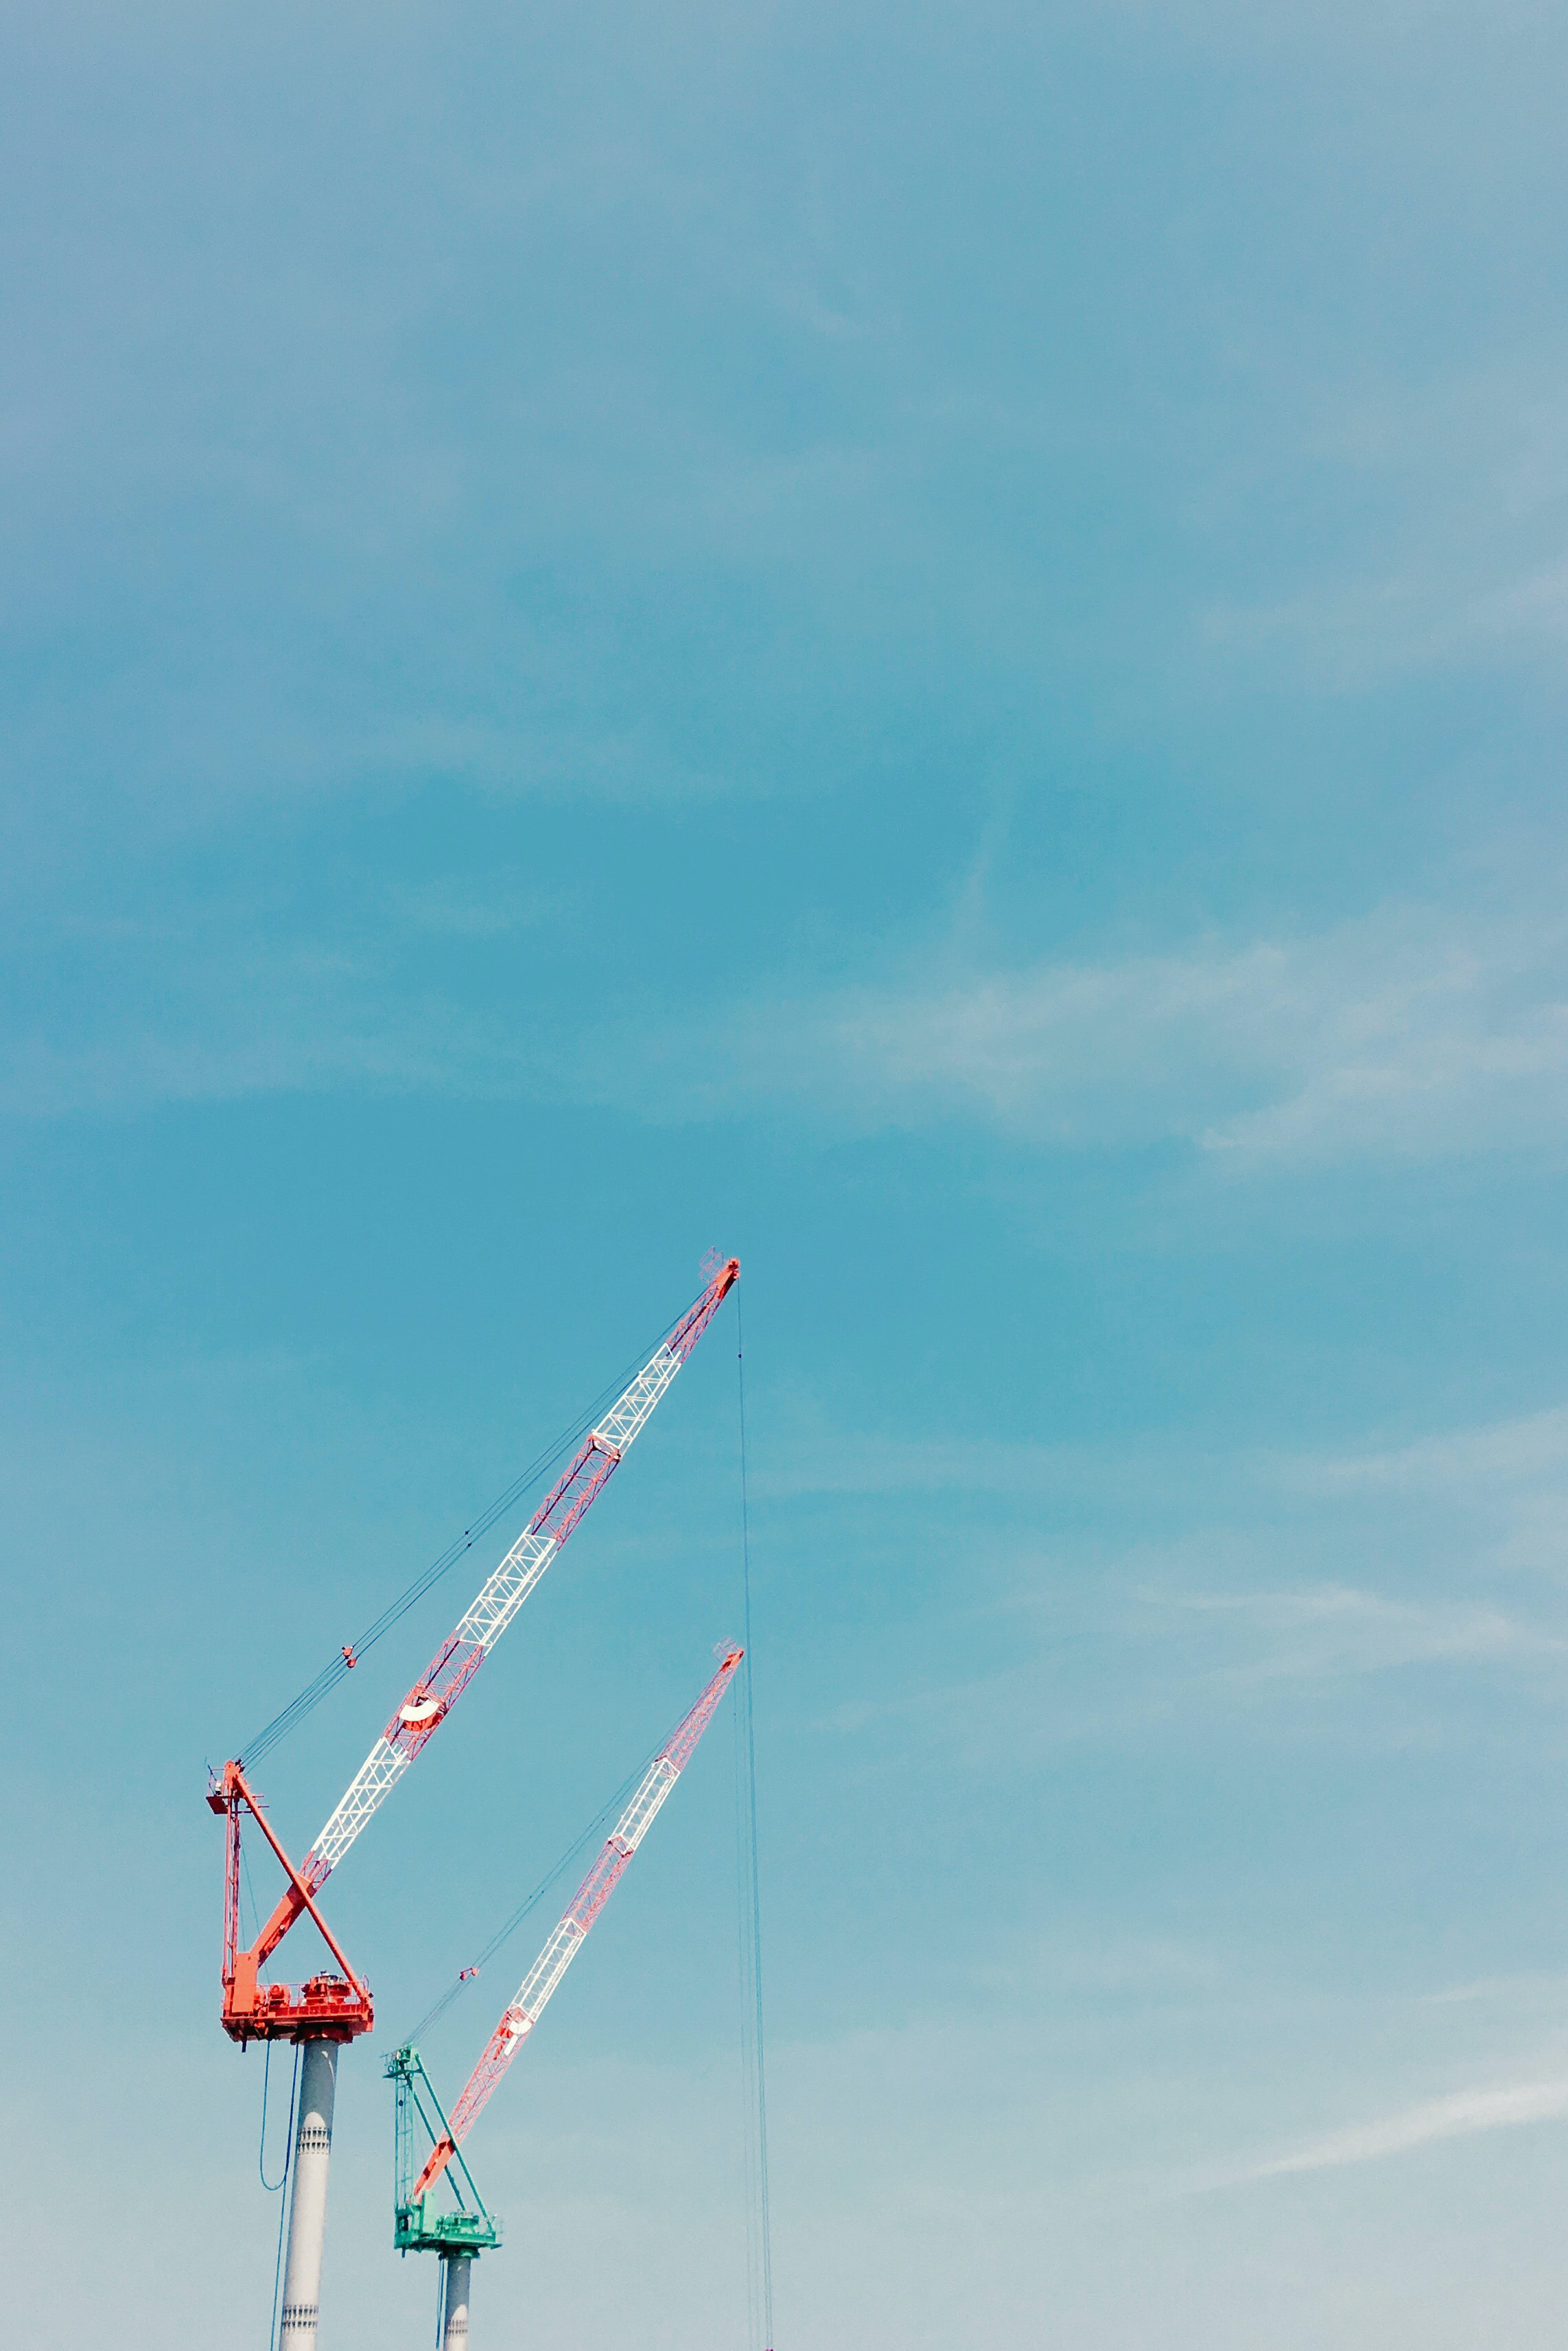 red and green steel cranes during daytime